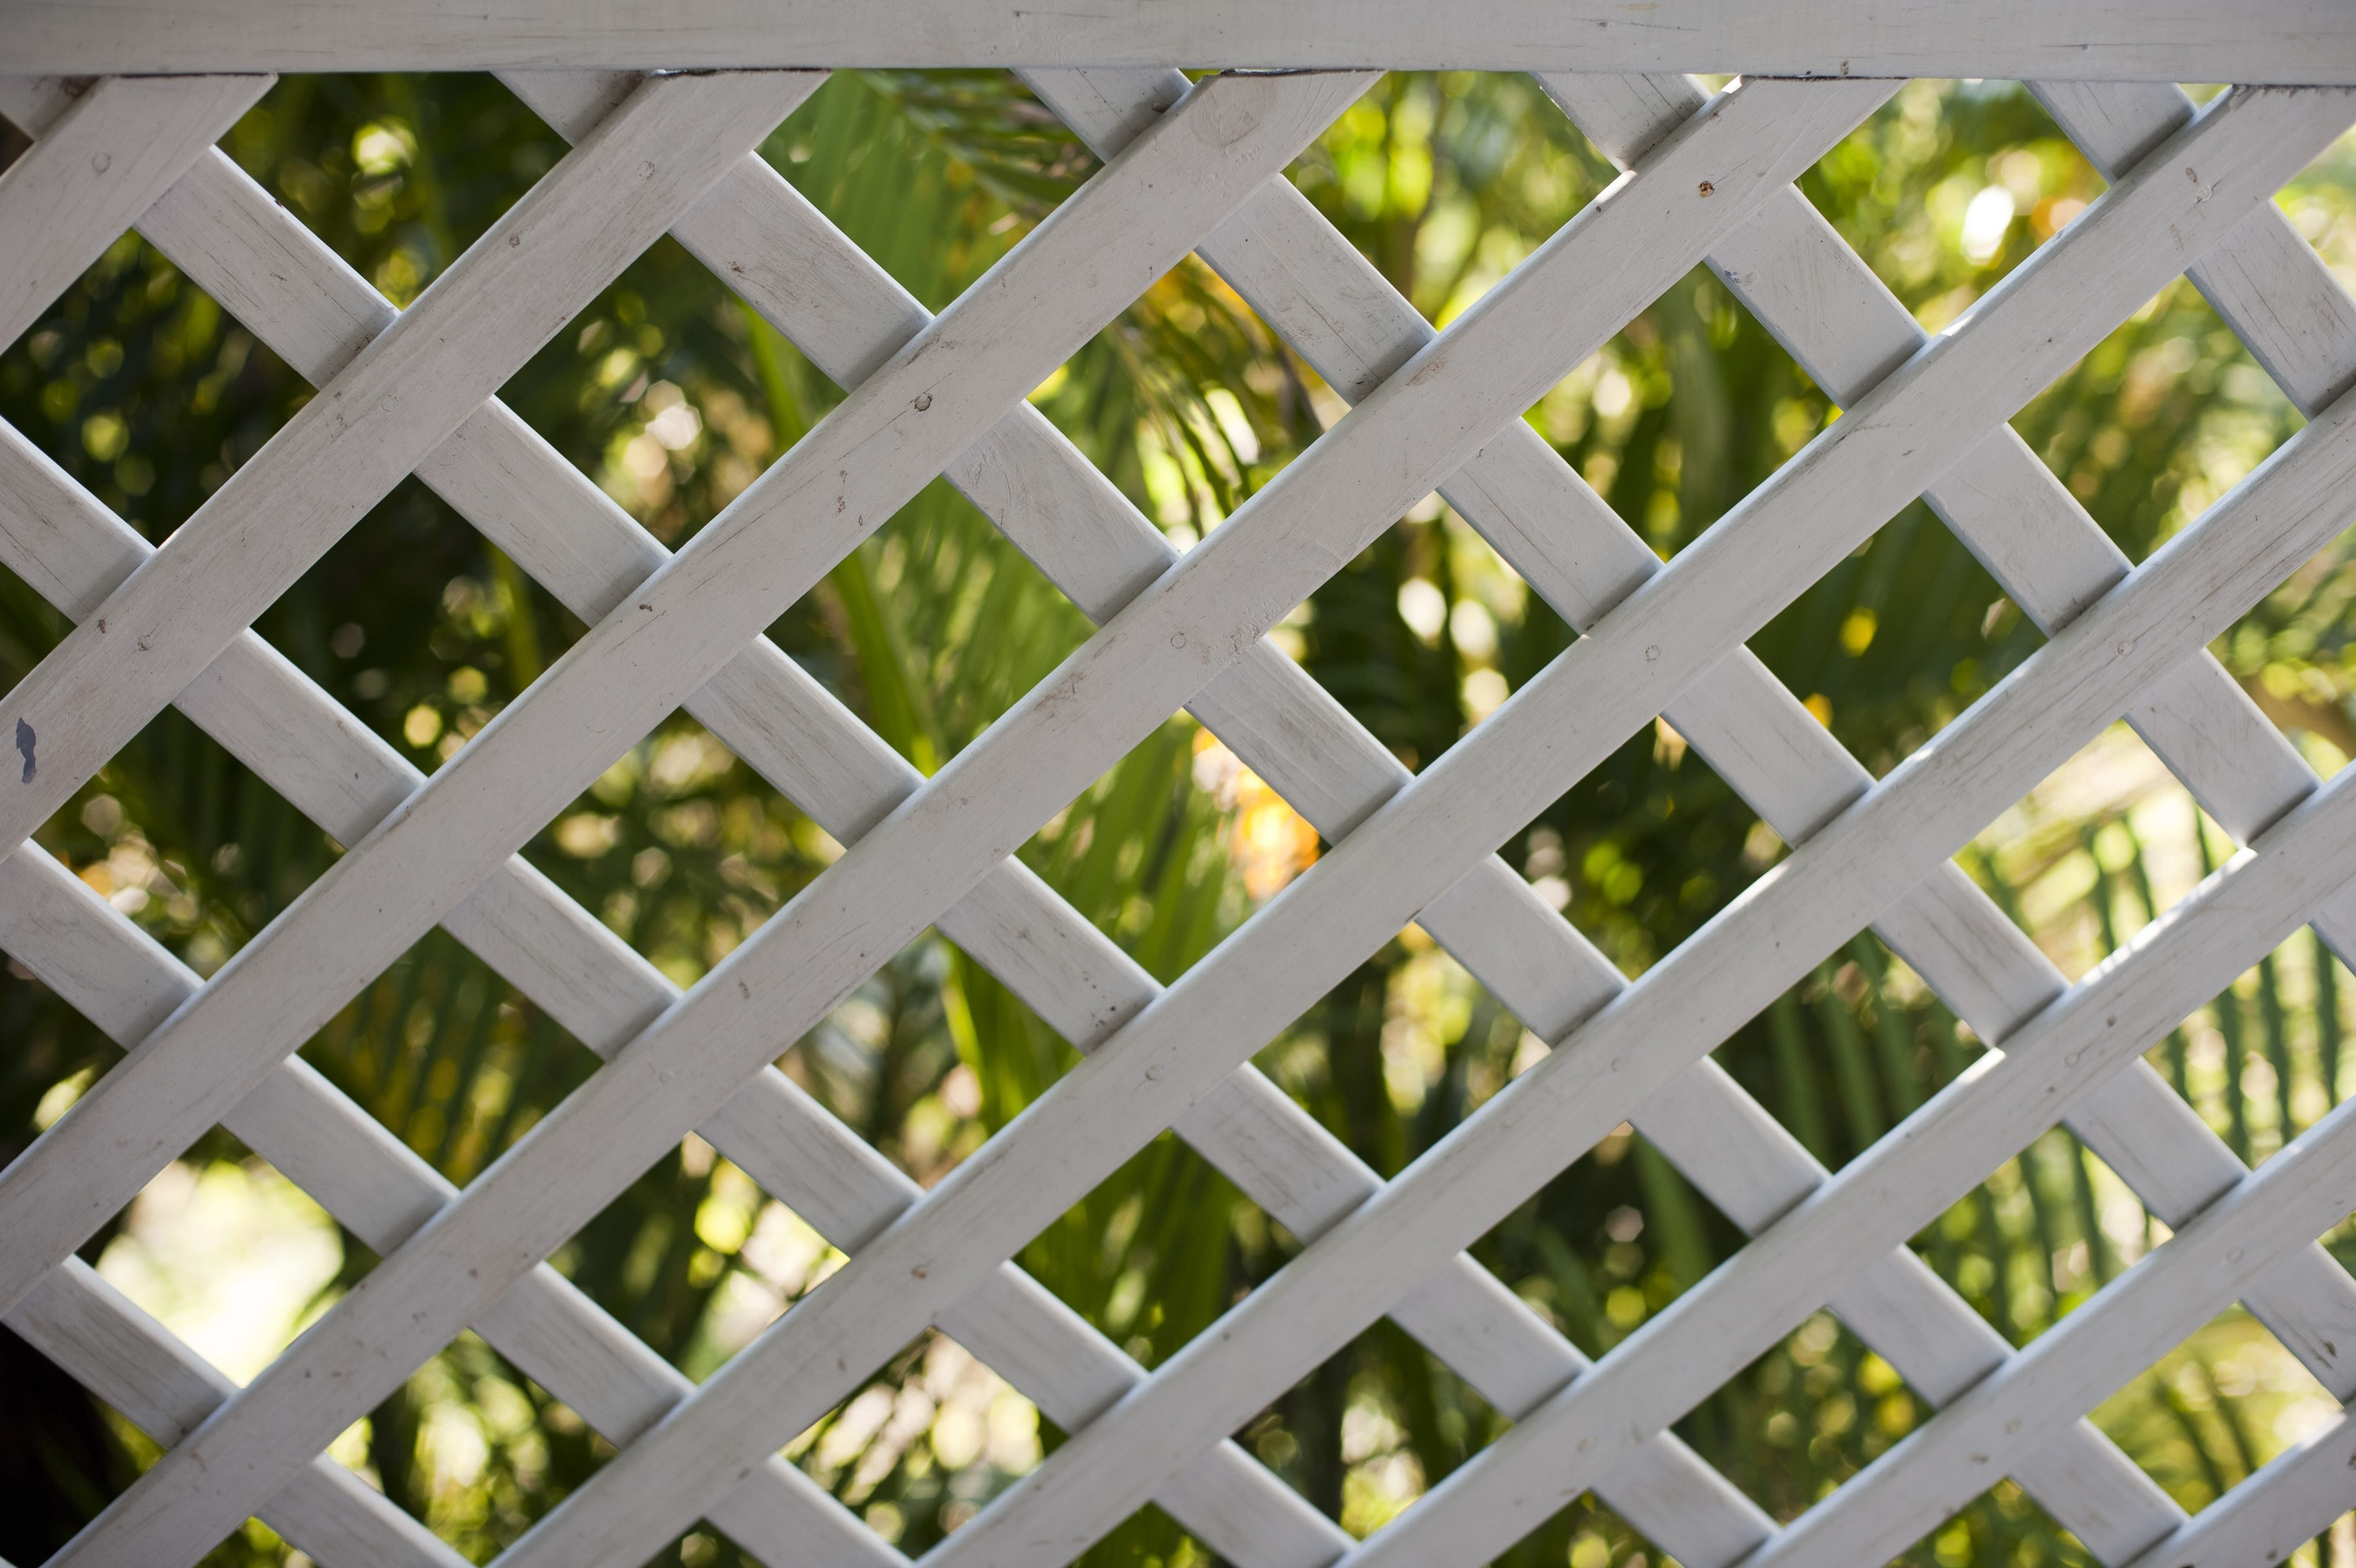 Background pattern of a wooden garden lattice or framework with a geometric diamond pattern